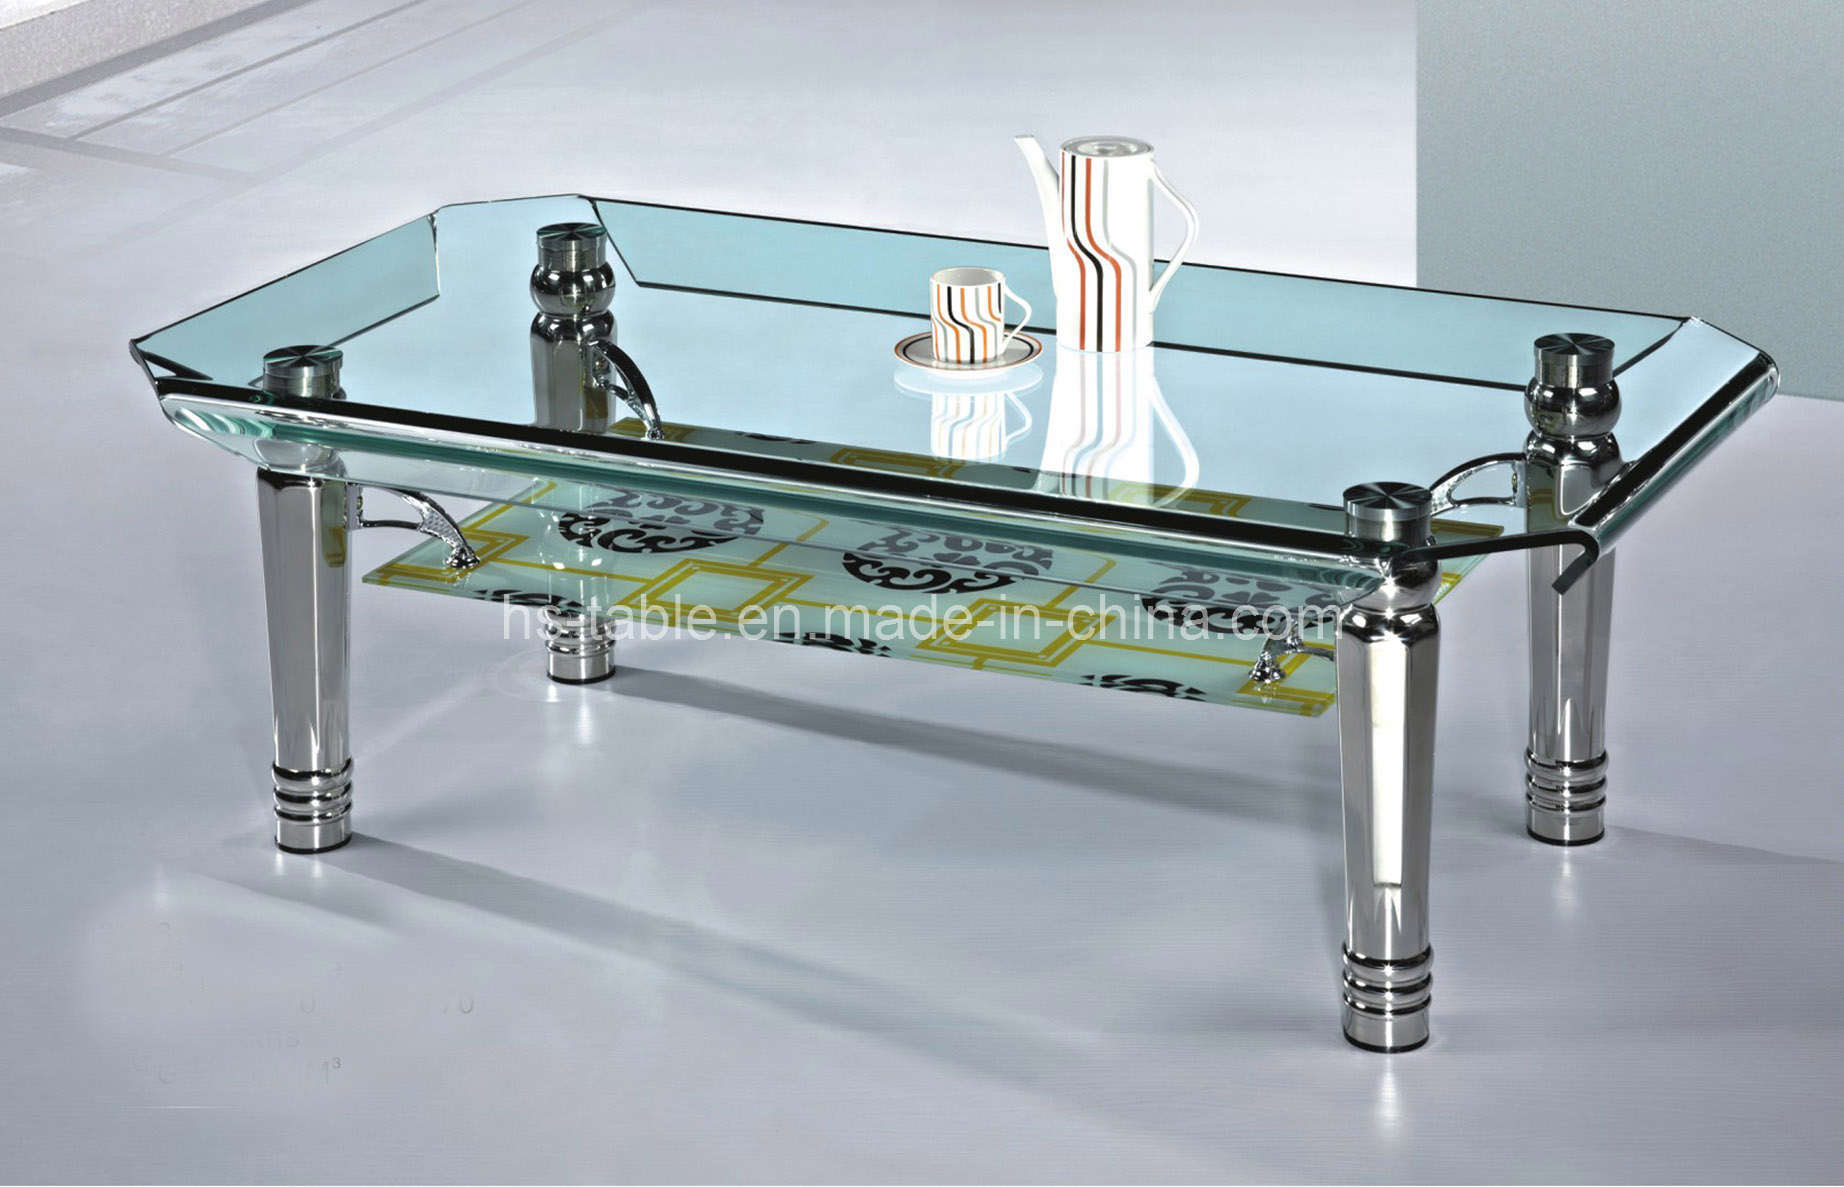 China bend glass top bend glass coffee table 2272 china glass coffee table glass tea table Glass top for coffee table